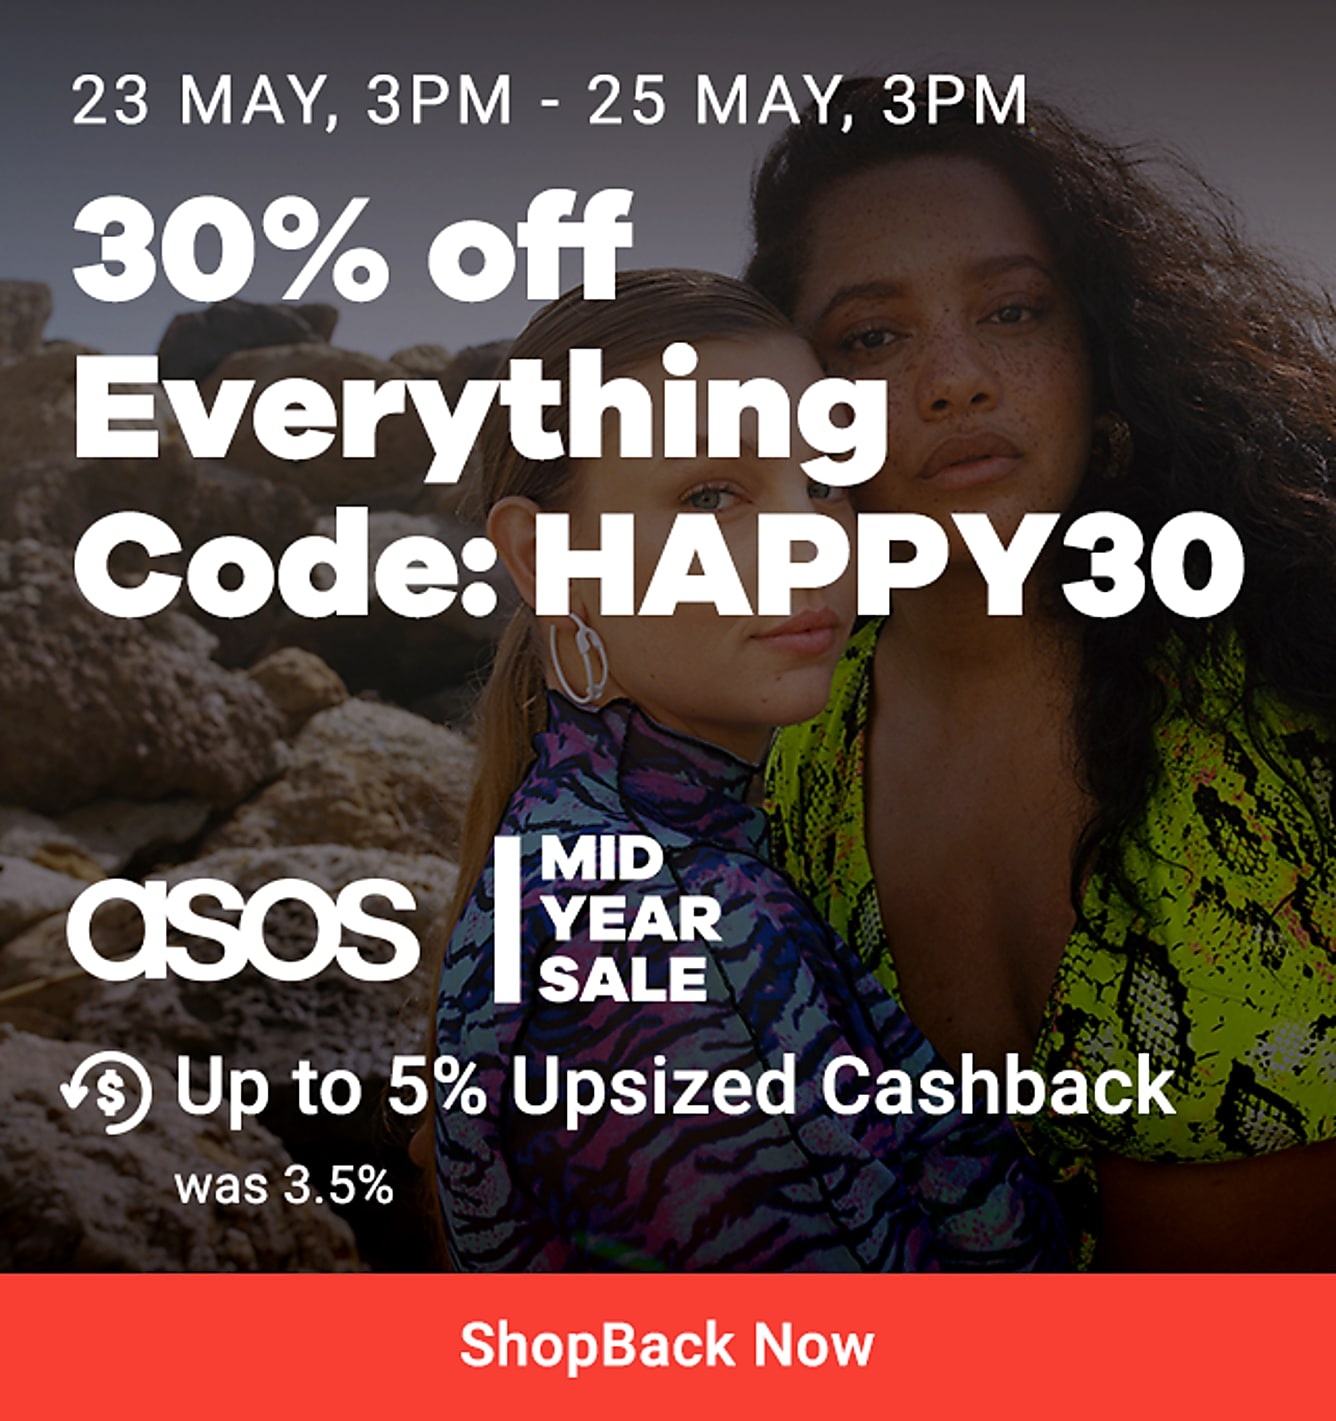 ASOS 30% off everything